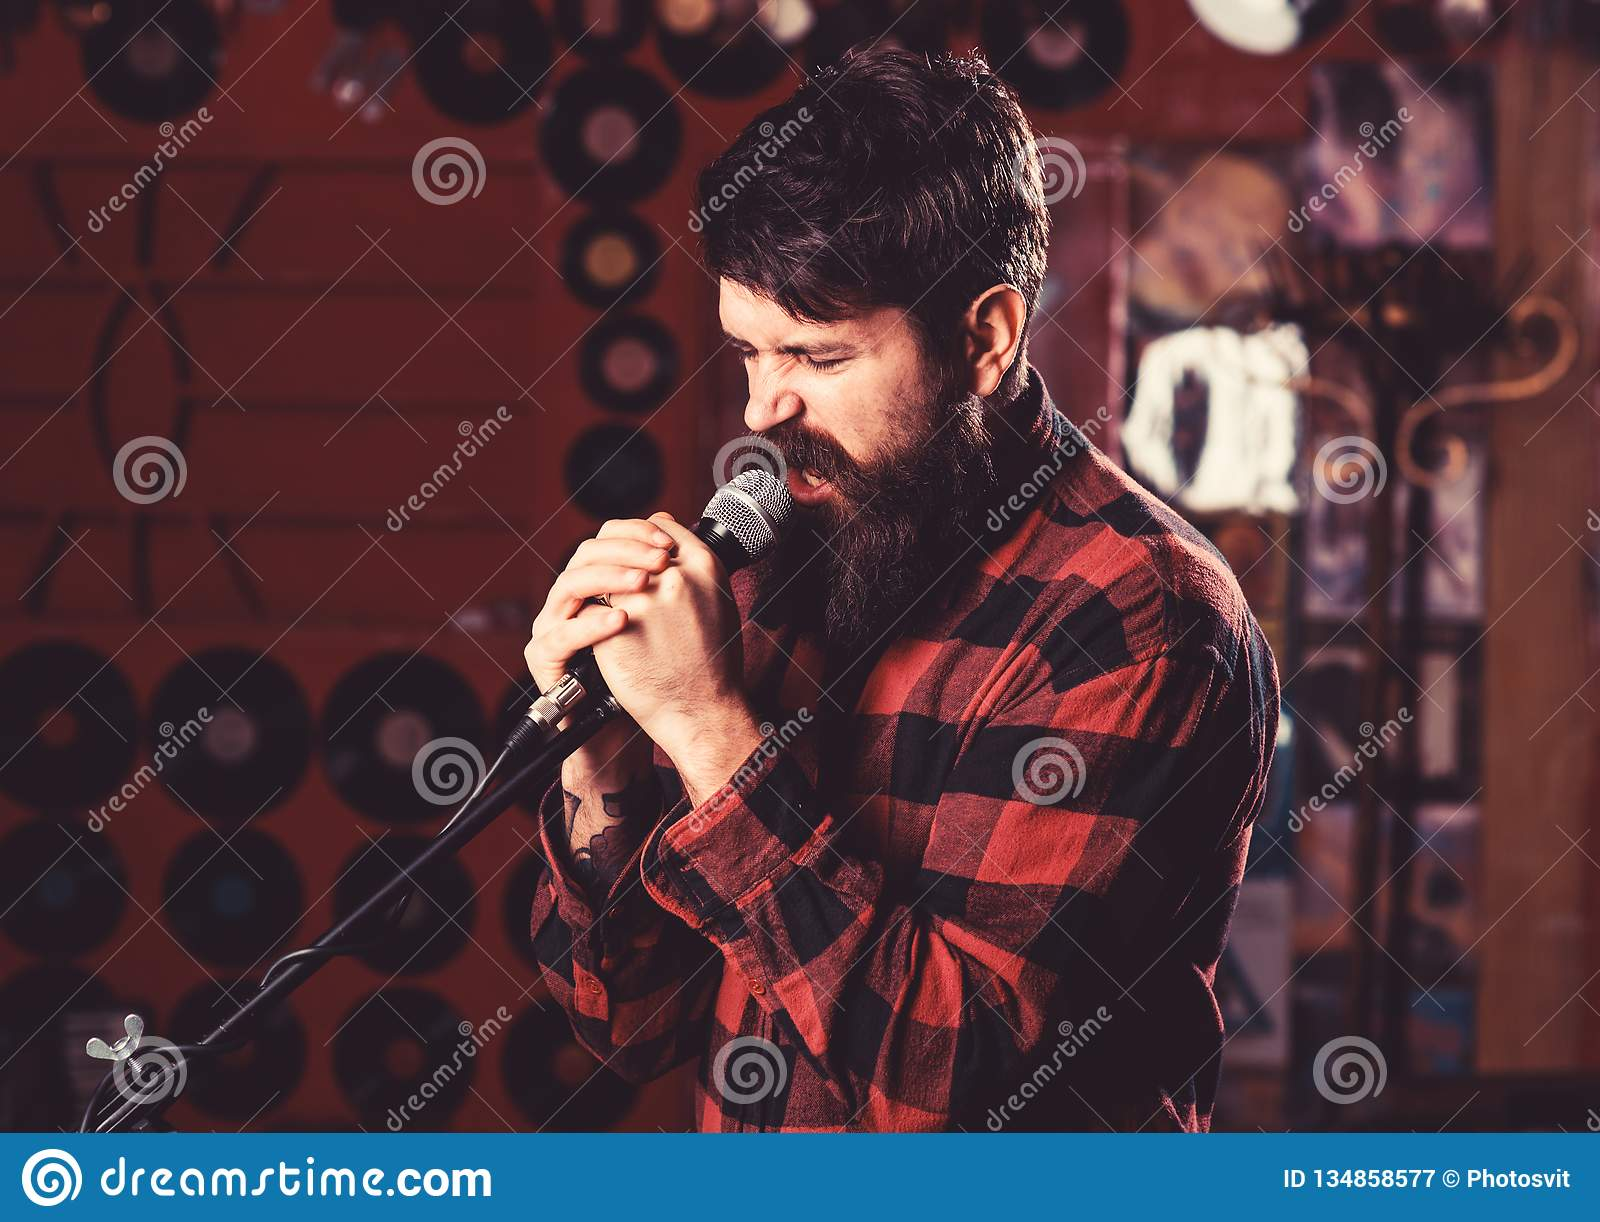 Musician With Beard And Mustache Singing Song In Karaoke  Stock